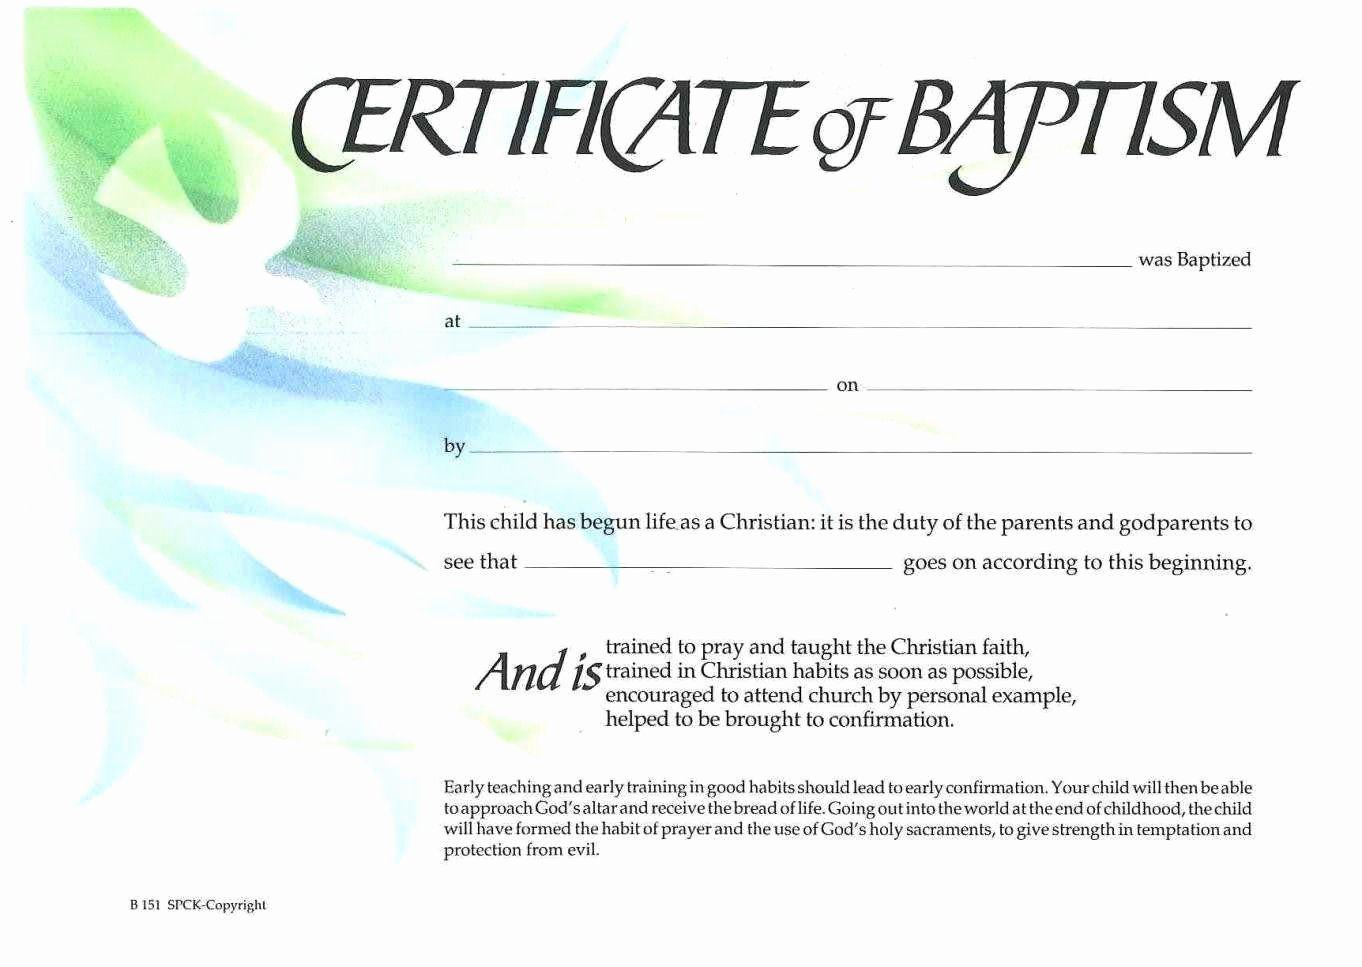 Baptism Certificate Template Free Inspirational Sample Baptism Certificate Templates